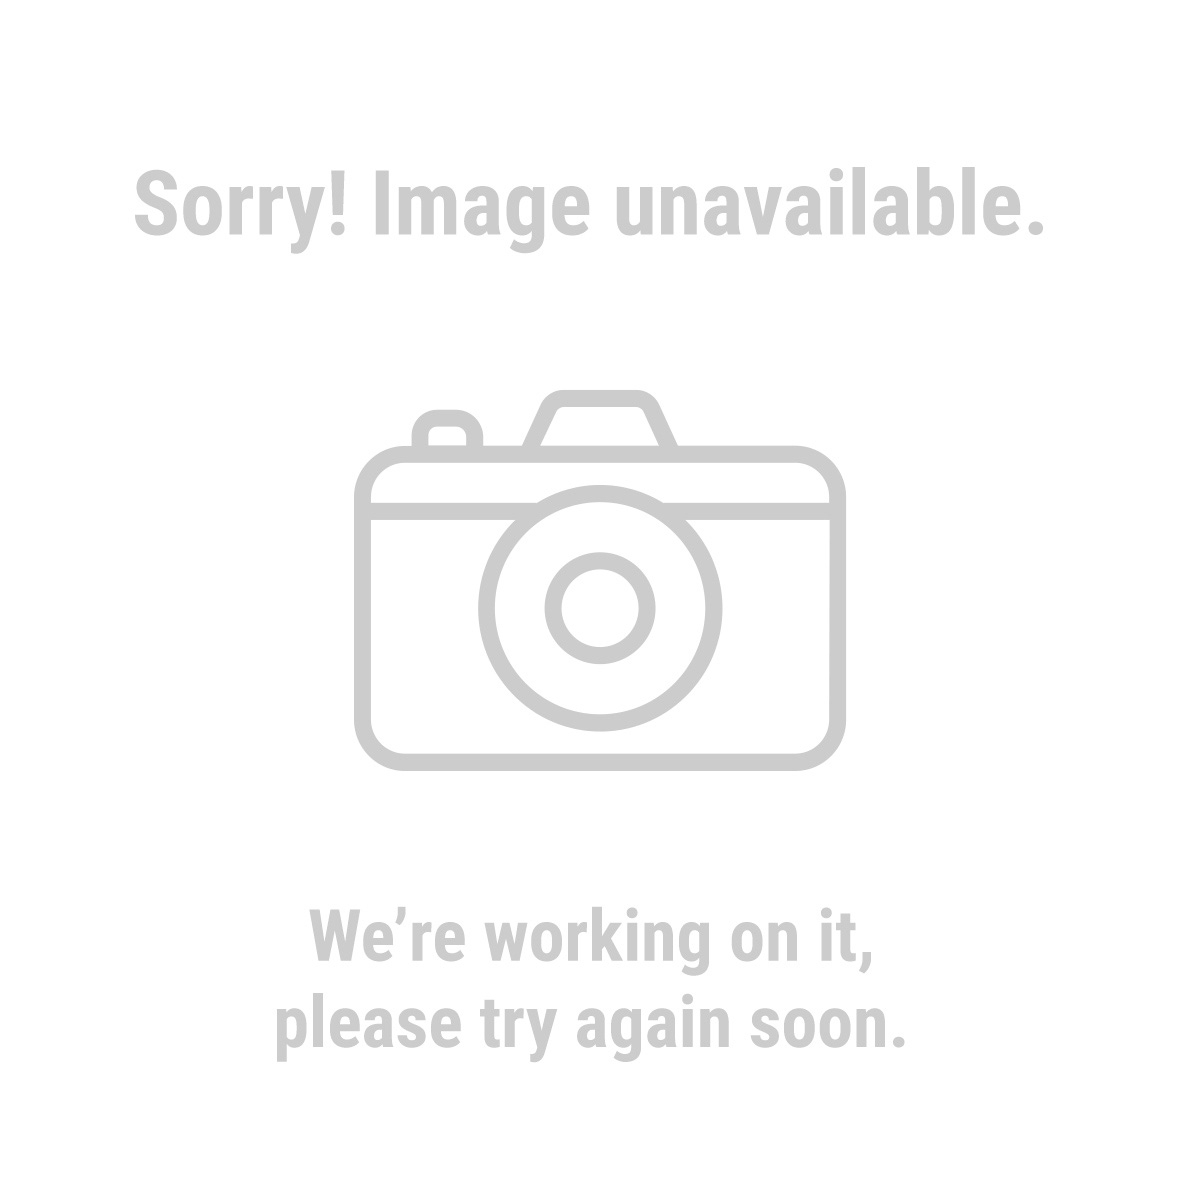 23 Gauge Pin Air Nailer